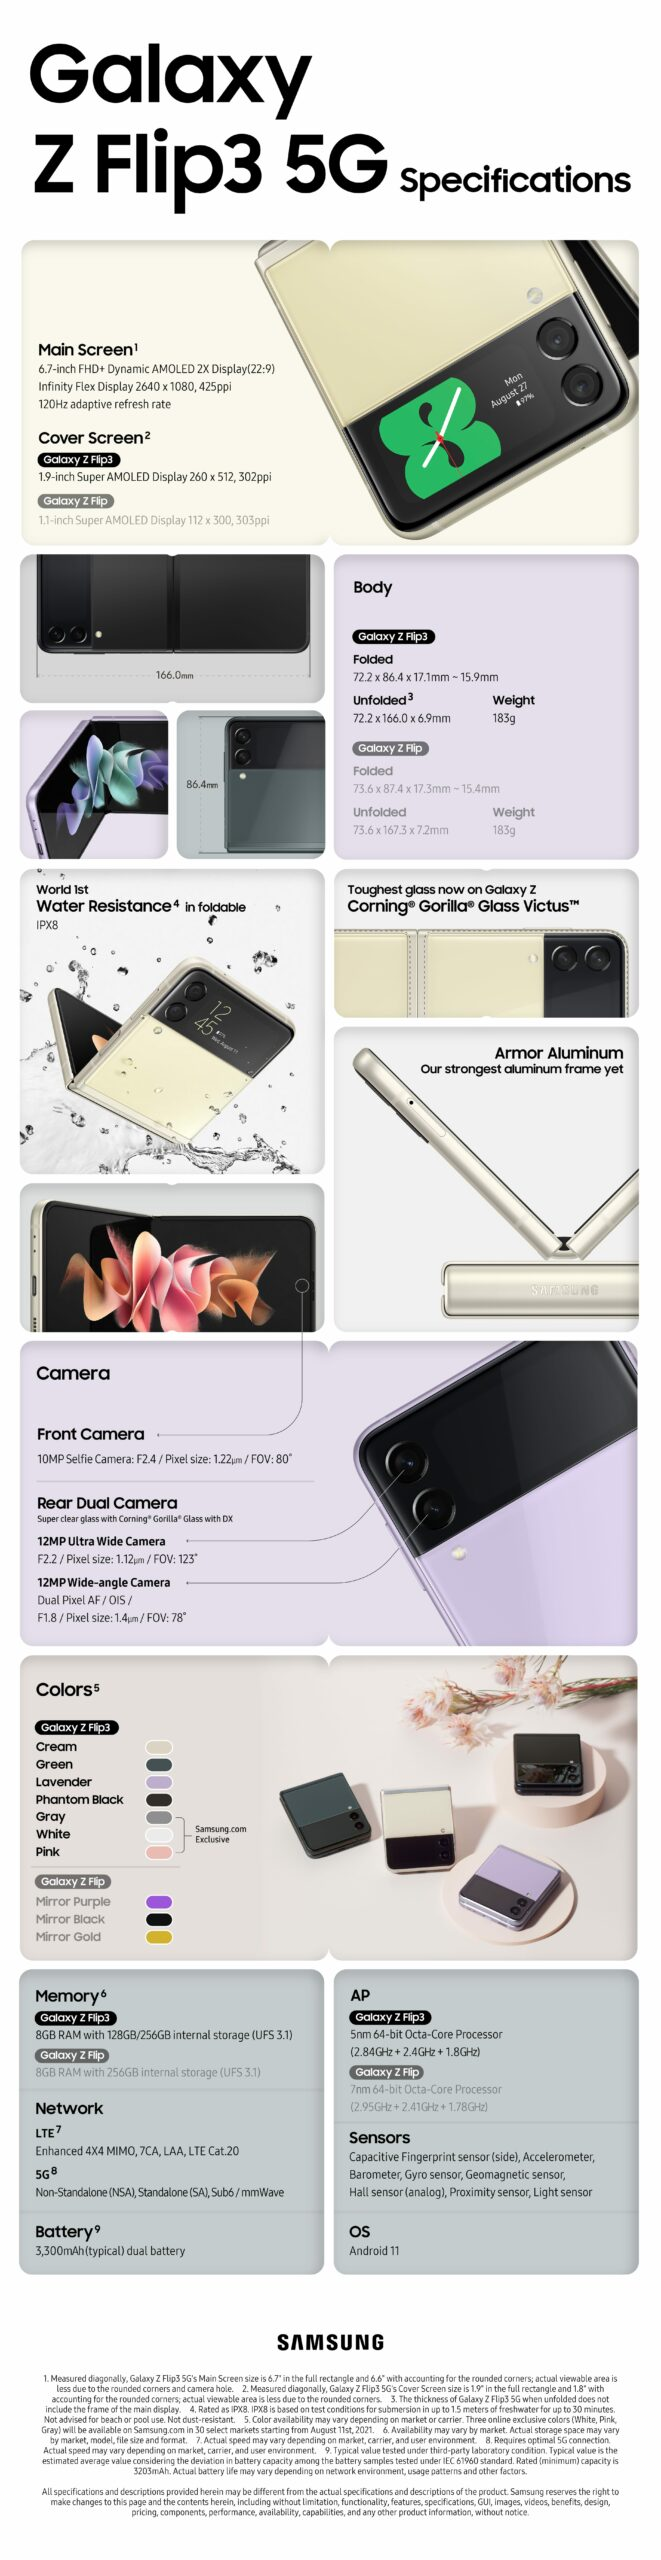 01 Galaxy Z Flip3 5g Product Specifications